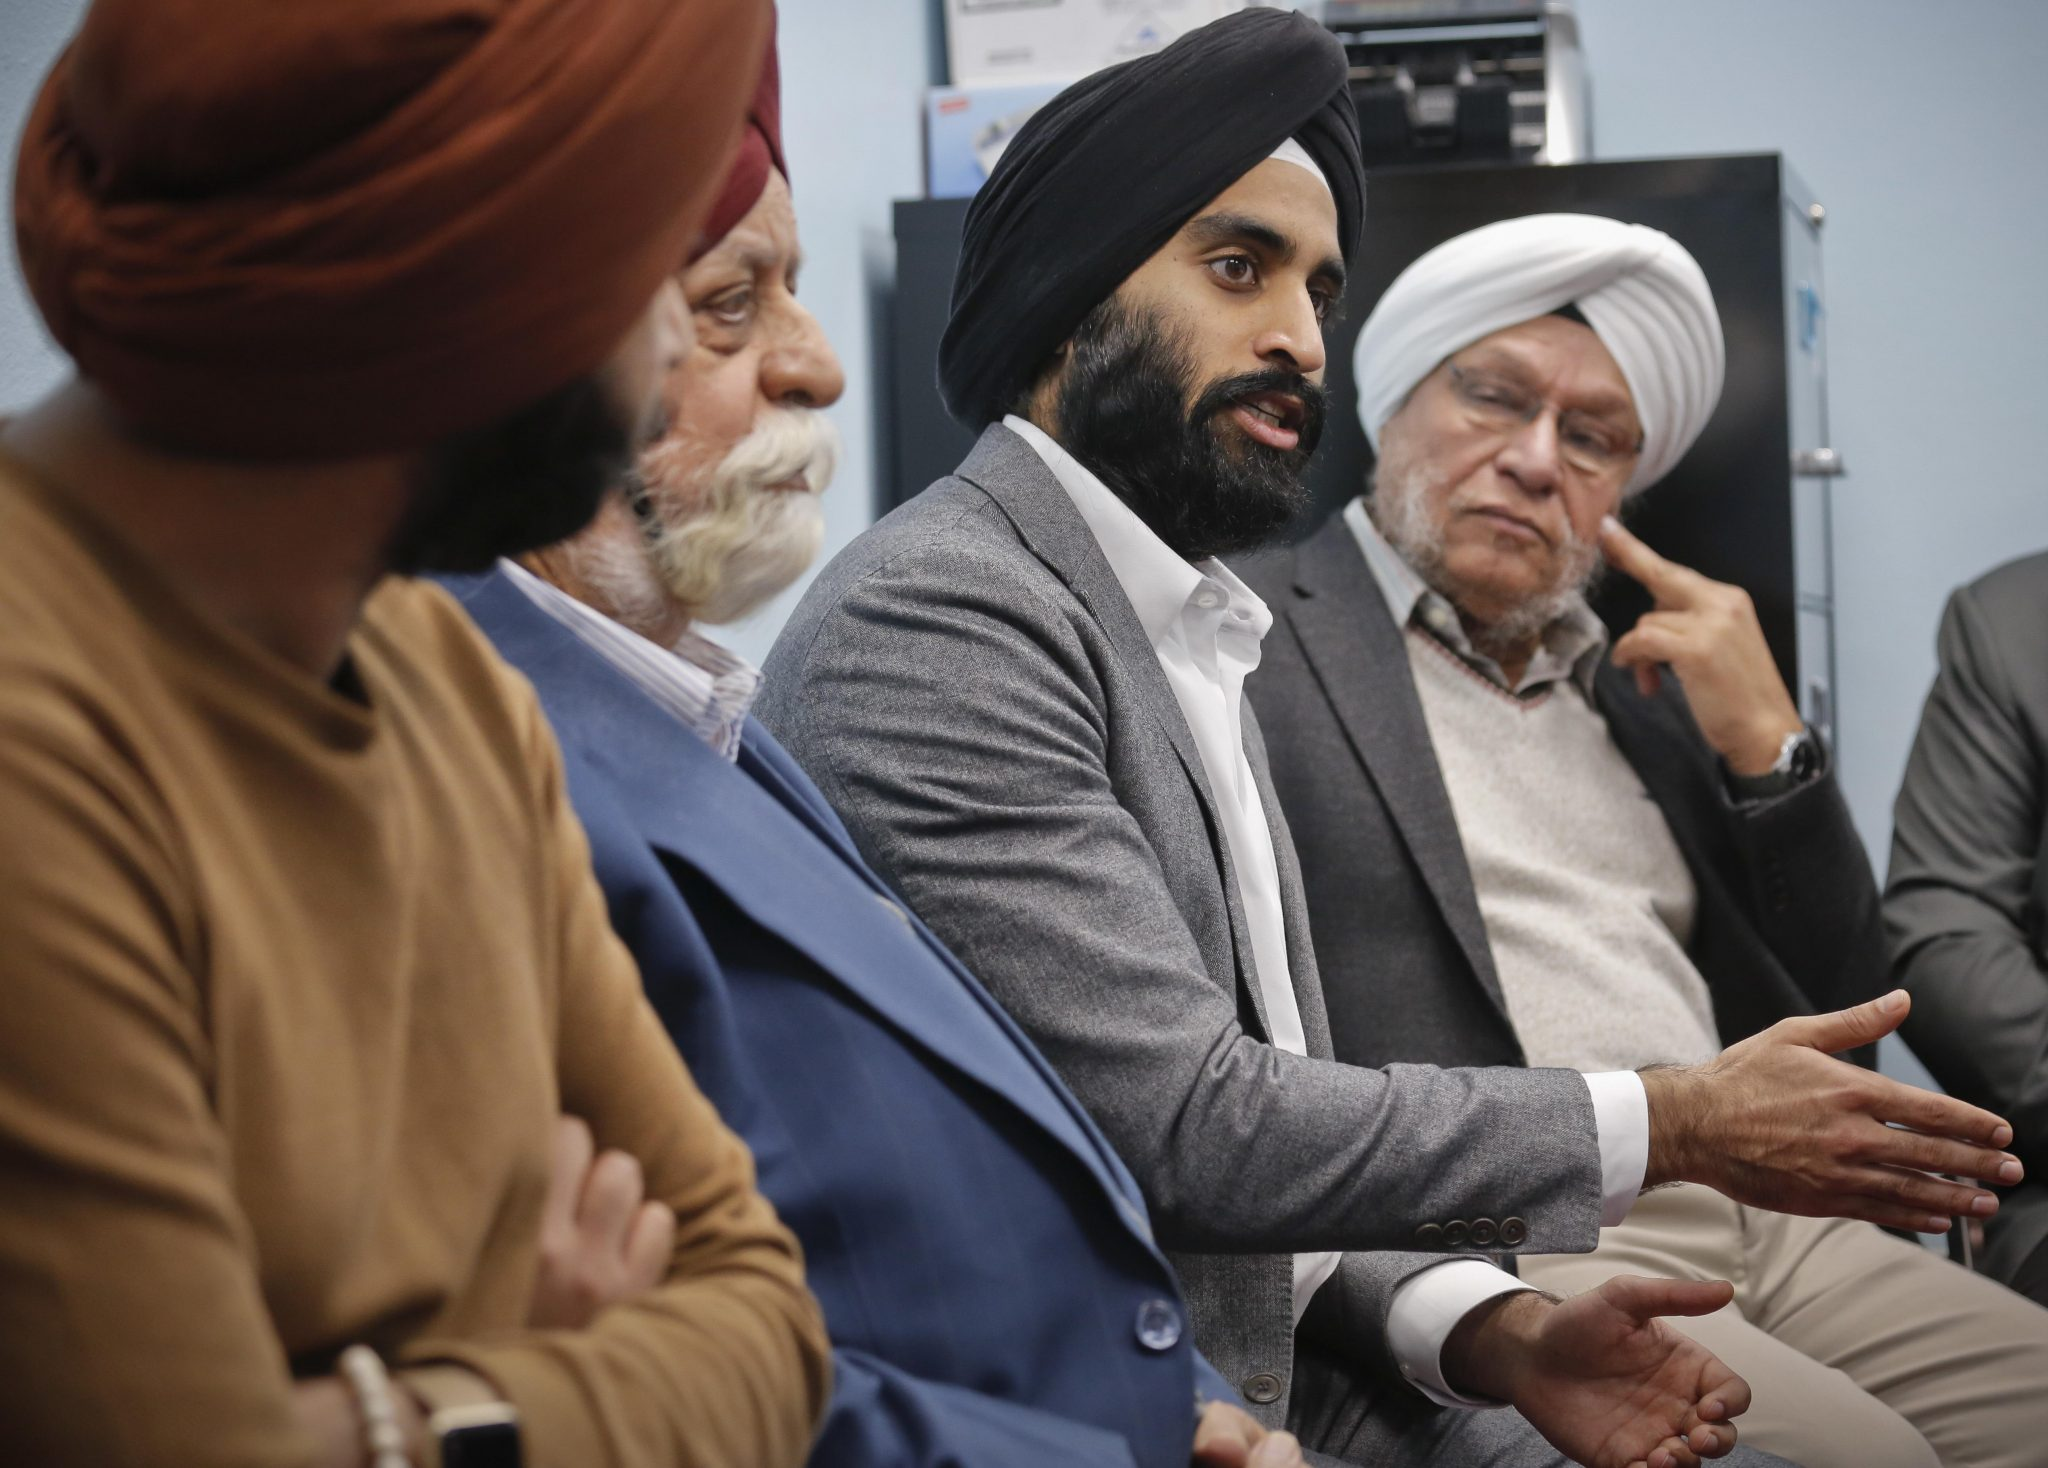 """In this April 9, 2017 photo, Gurwin Ahuja, center, a 27-year-old political operative who helped organize a new awareness campaign to stop attacks against Sikhs, meets with Sikh leaders at the Guru Nanak Darbar house of worship, in Hicksville, N.Y. America's Sikh community is launching a million-dollar nationwide public awareness campaign to help prevent hate attacks against its people. """"Another important motivation is to inspire our young people,"""" said Ahuja. """"To be proud of their values and where they come from."""" (AP Photo/Bebeto Matthews) ORG XMIT: NYBM511"""